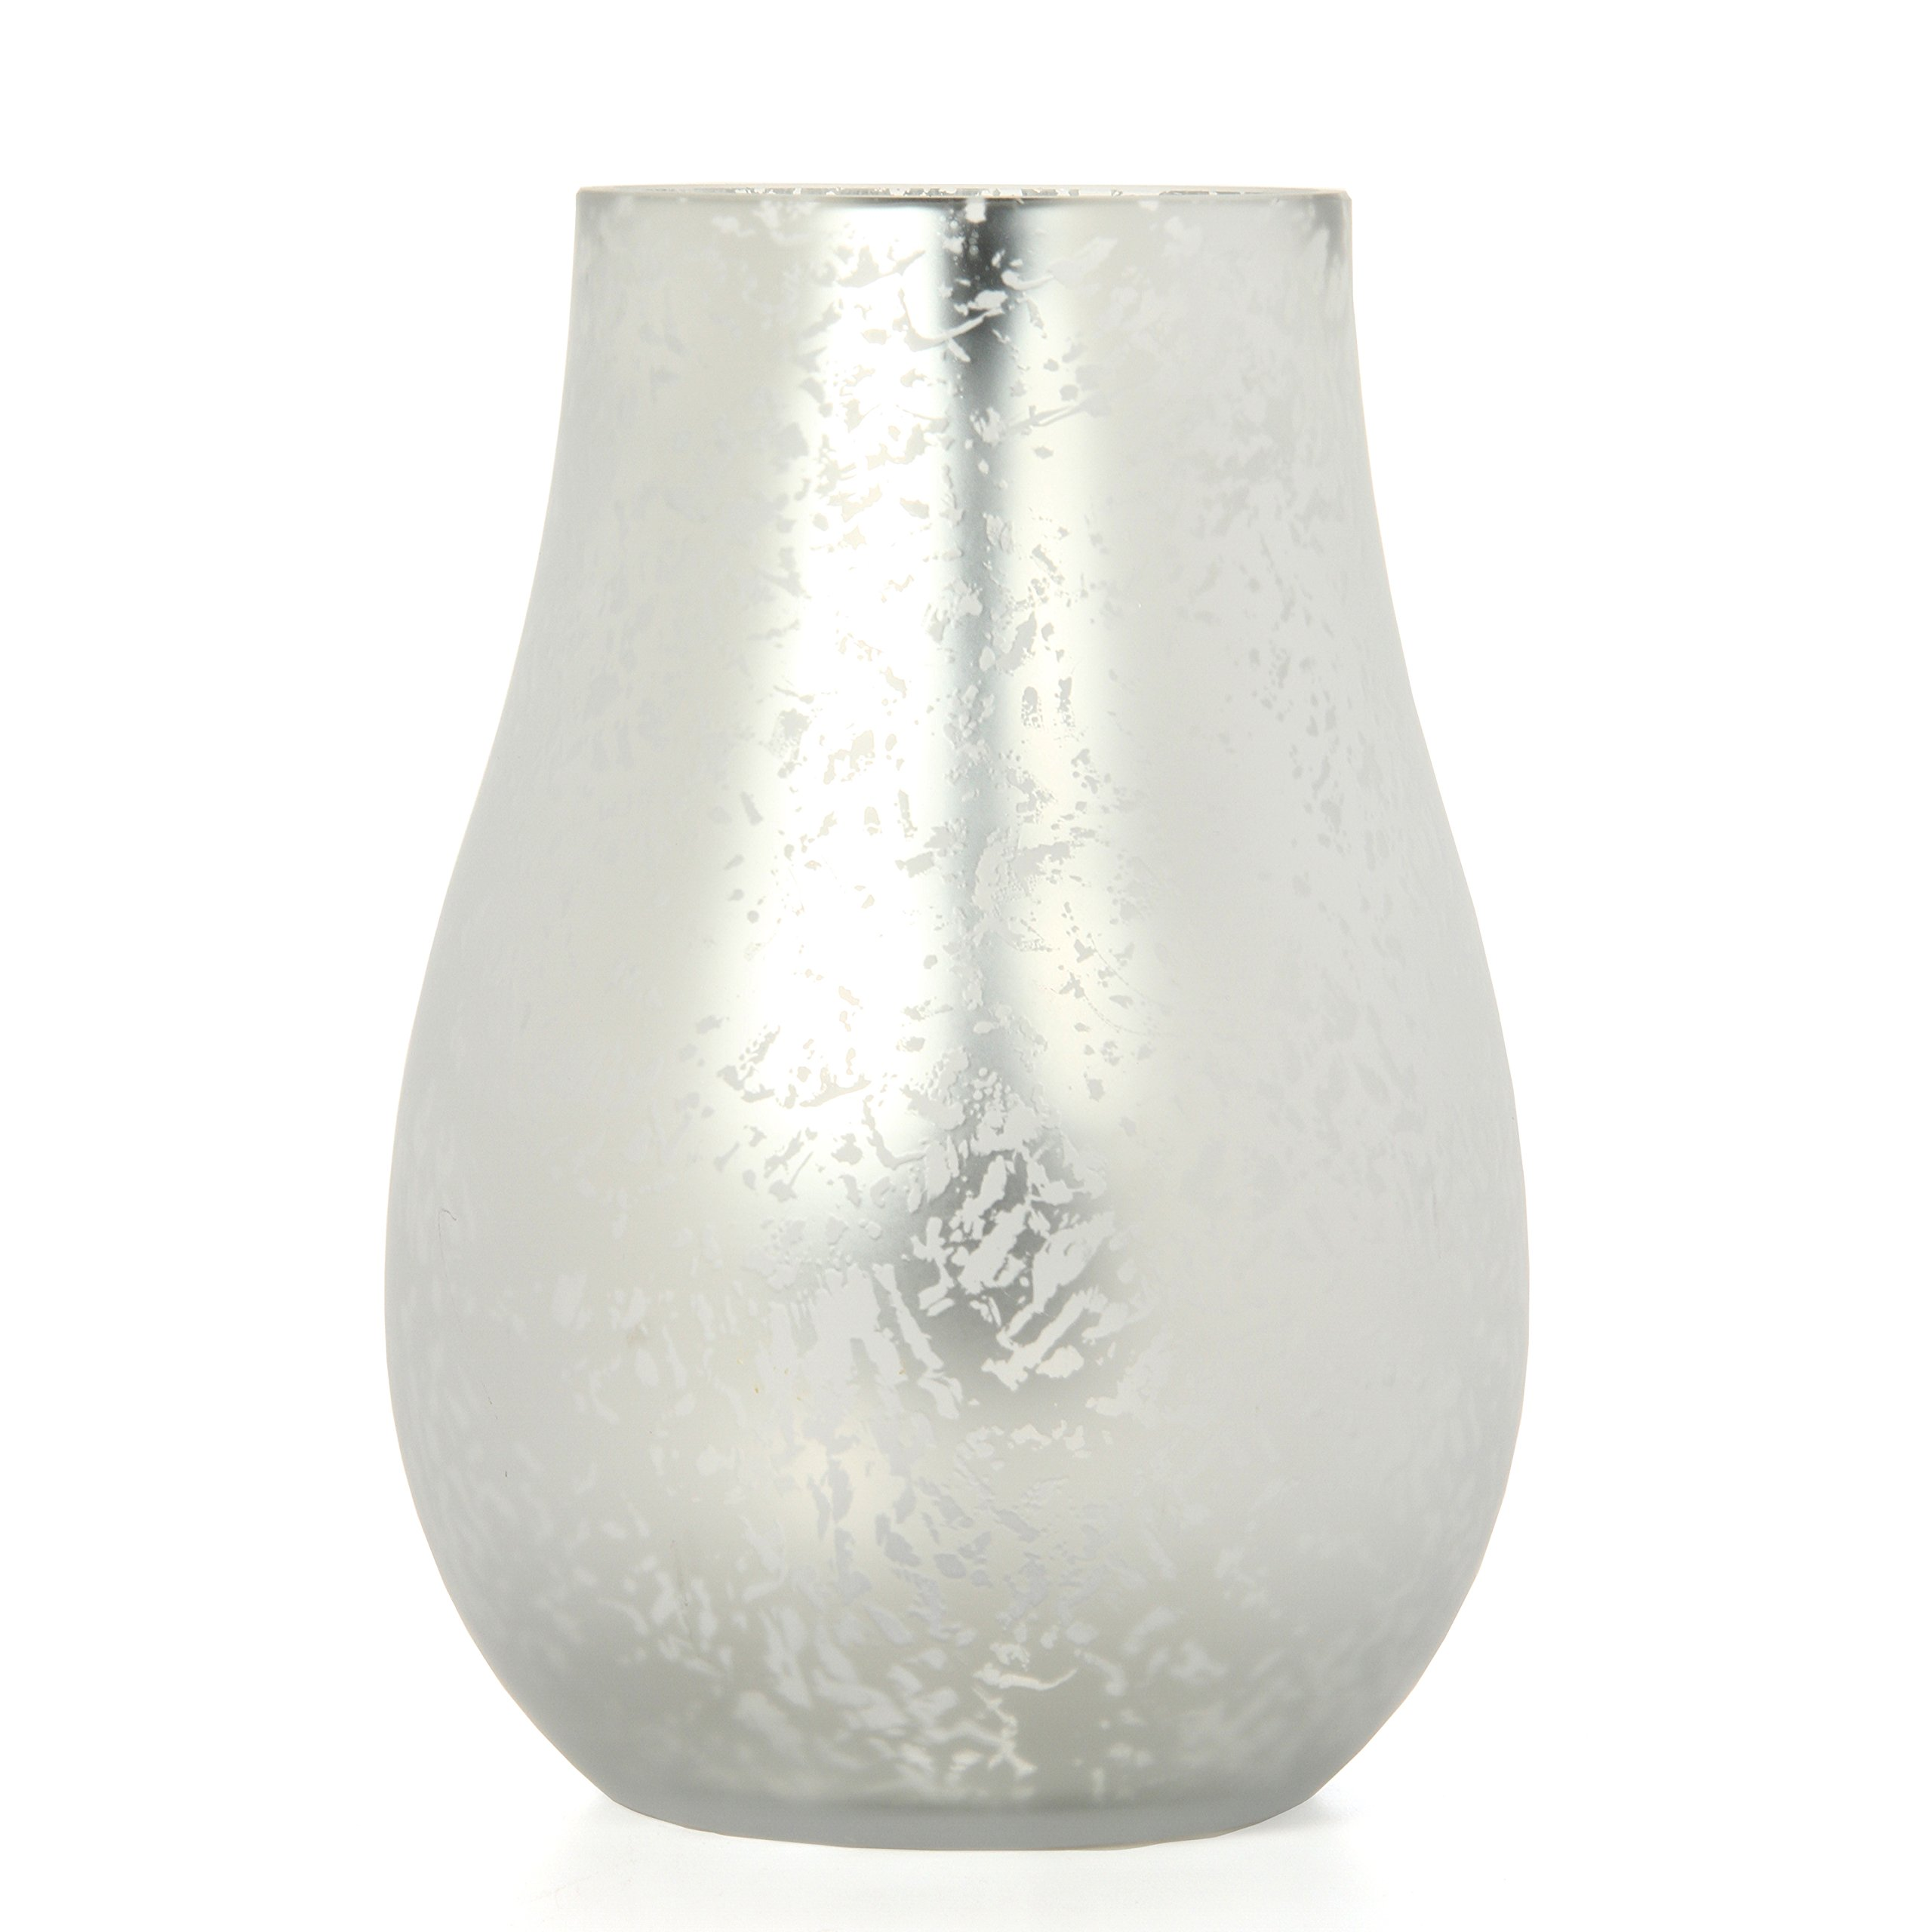 Hosley Silver Frosted Glass Floral Vase Lantern 8'' High. Ideal Gift for Weddings, Bridal, Spa, Meditation, Reiki, Rose Vase, Nautical Settings, Storage LED Candle Votive Garden P2